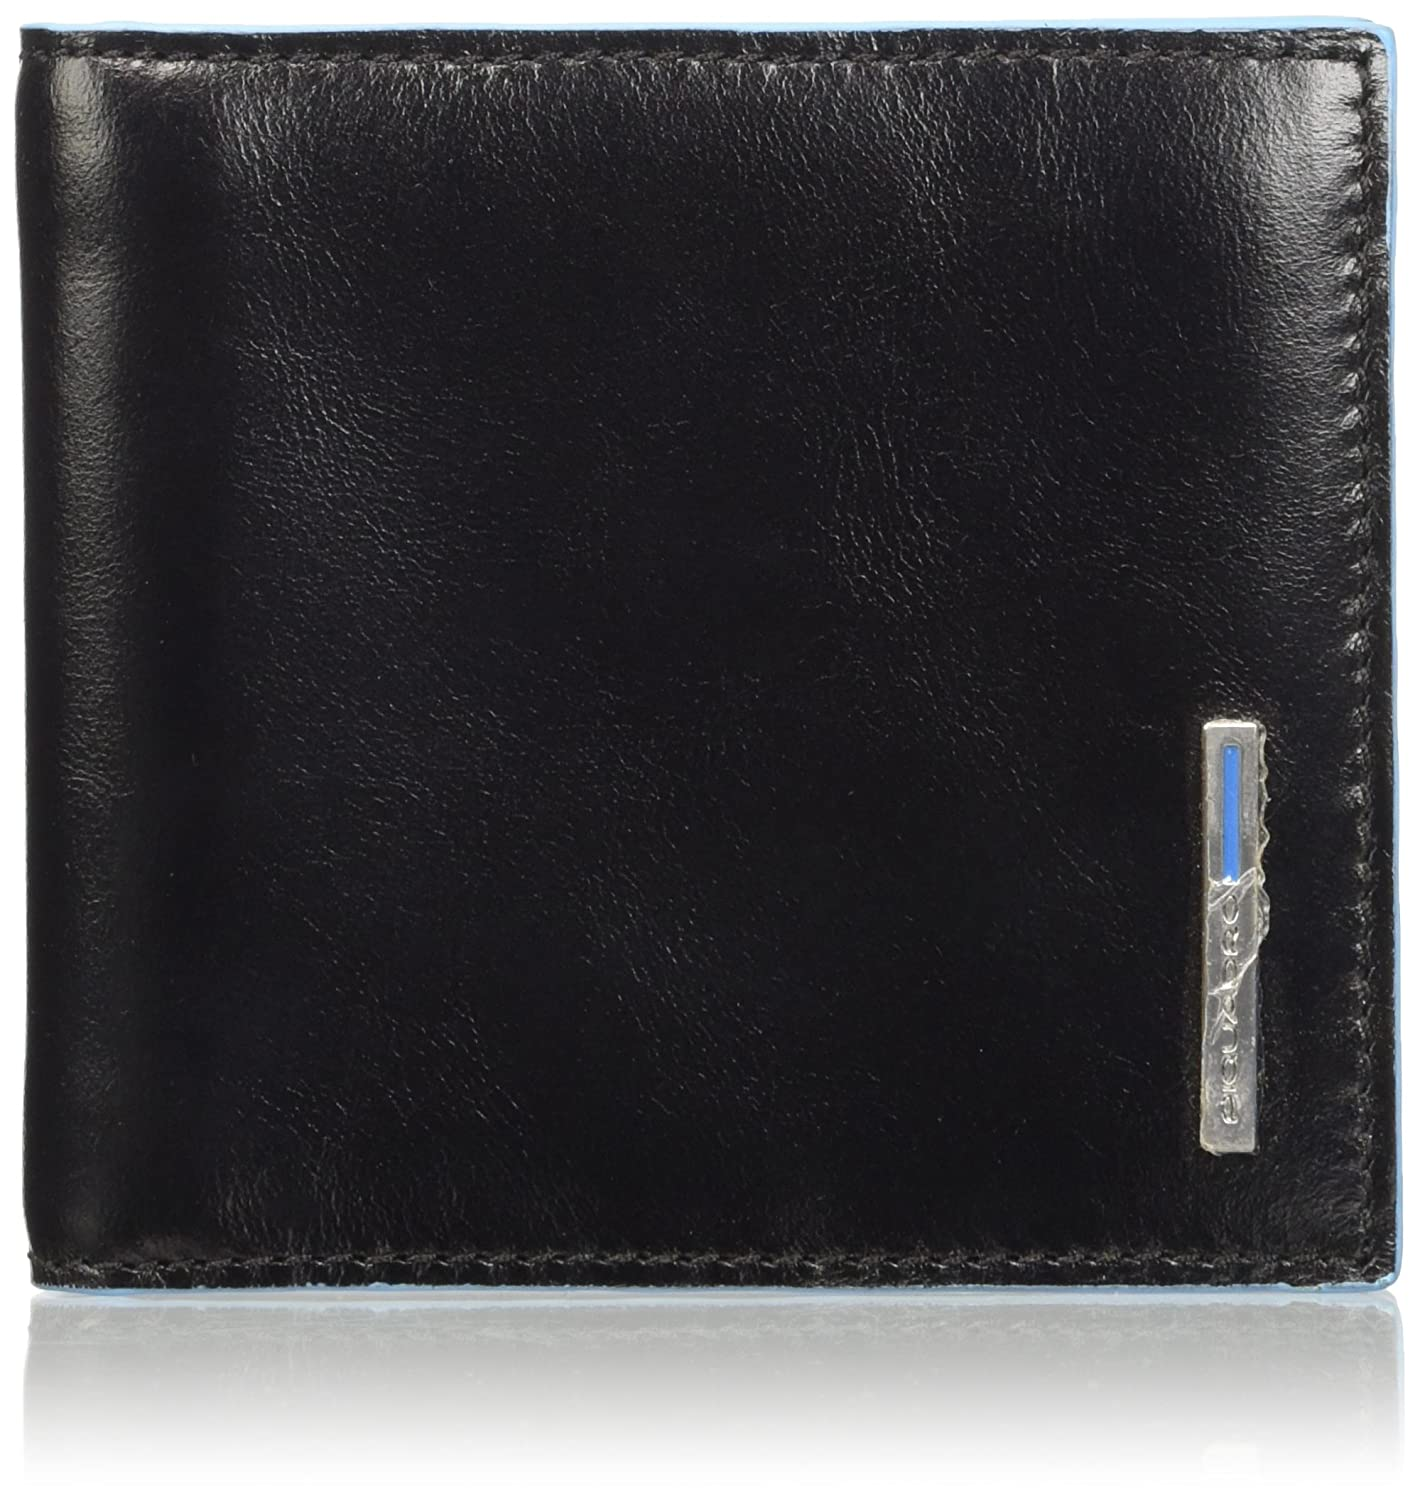 Piquadro Men's Wallet with Money Clip, Black, One Size Piquadro Luggage Child Code PU1666B2/N